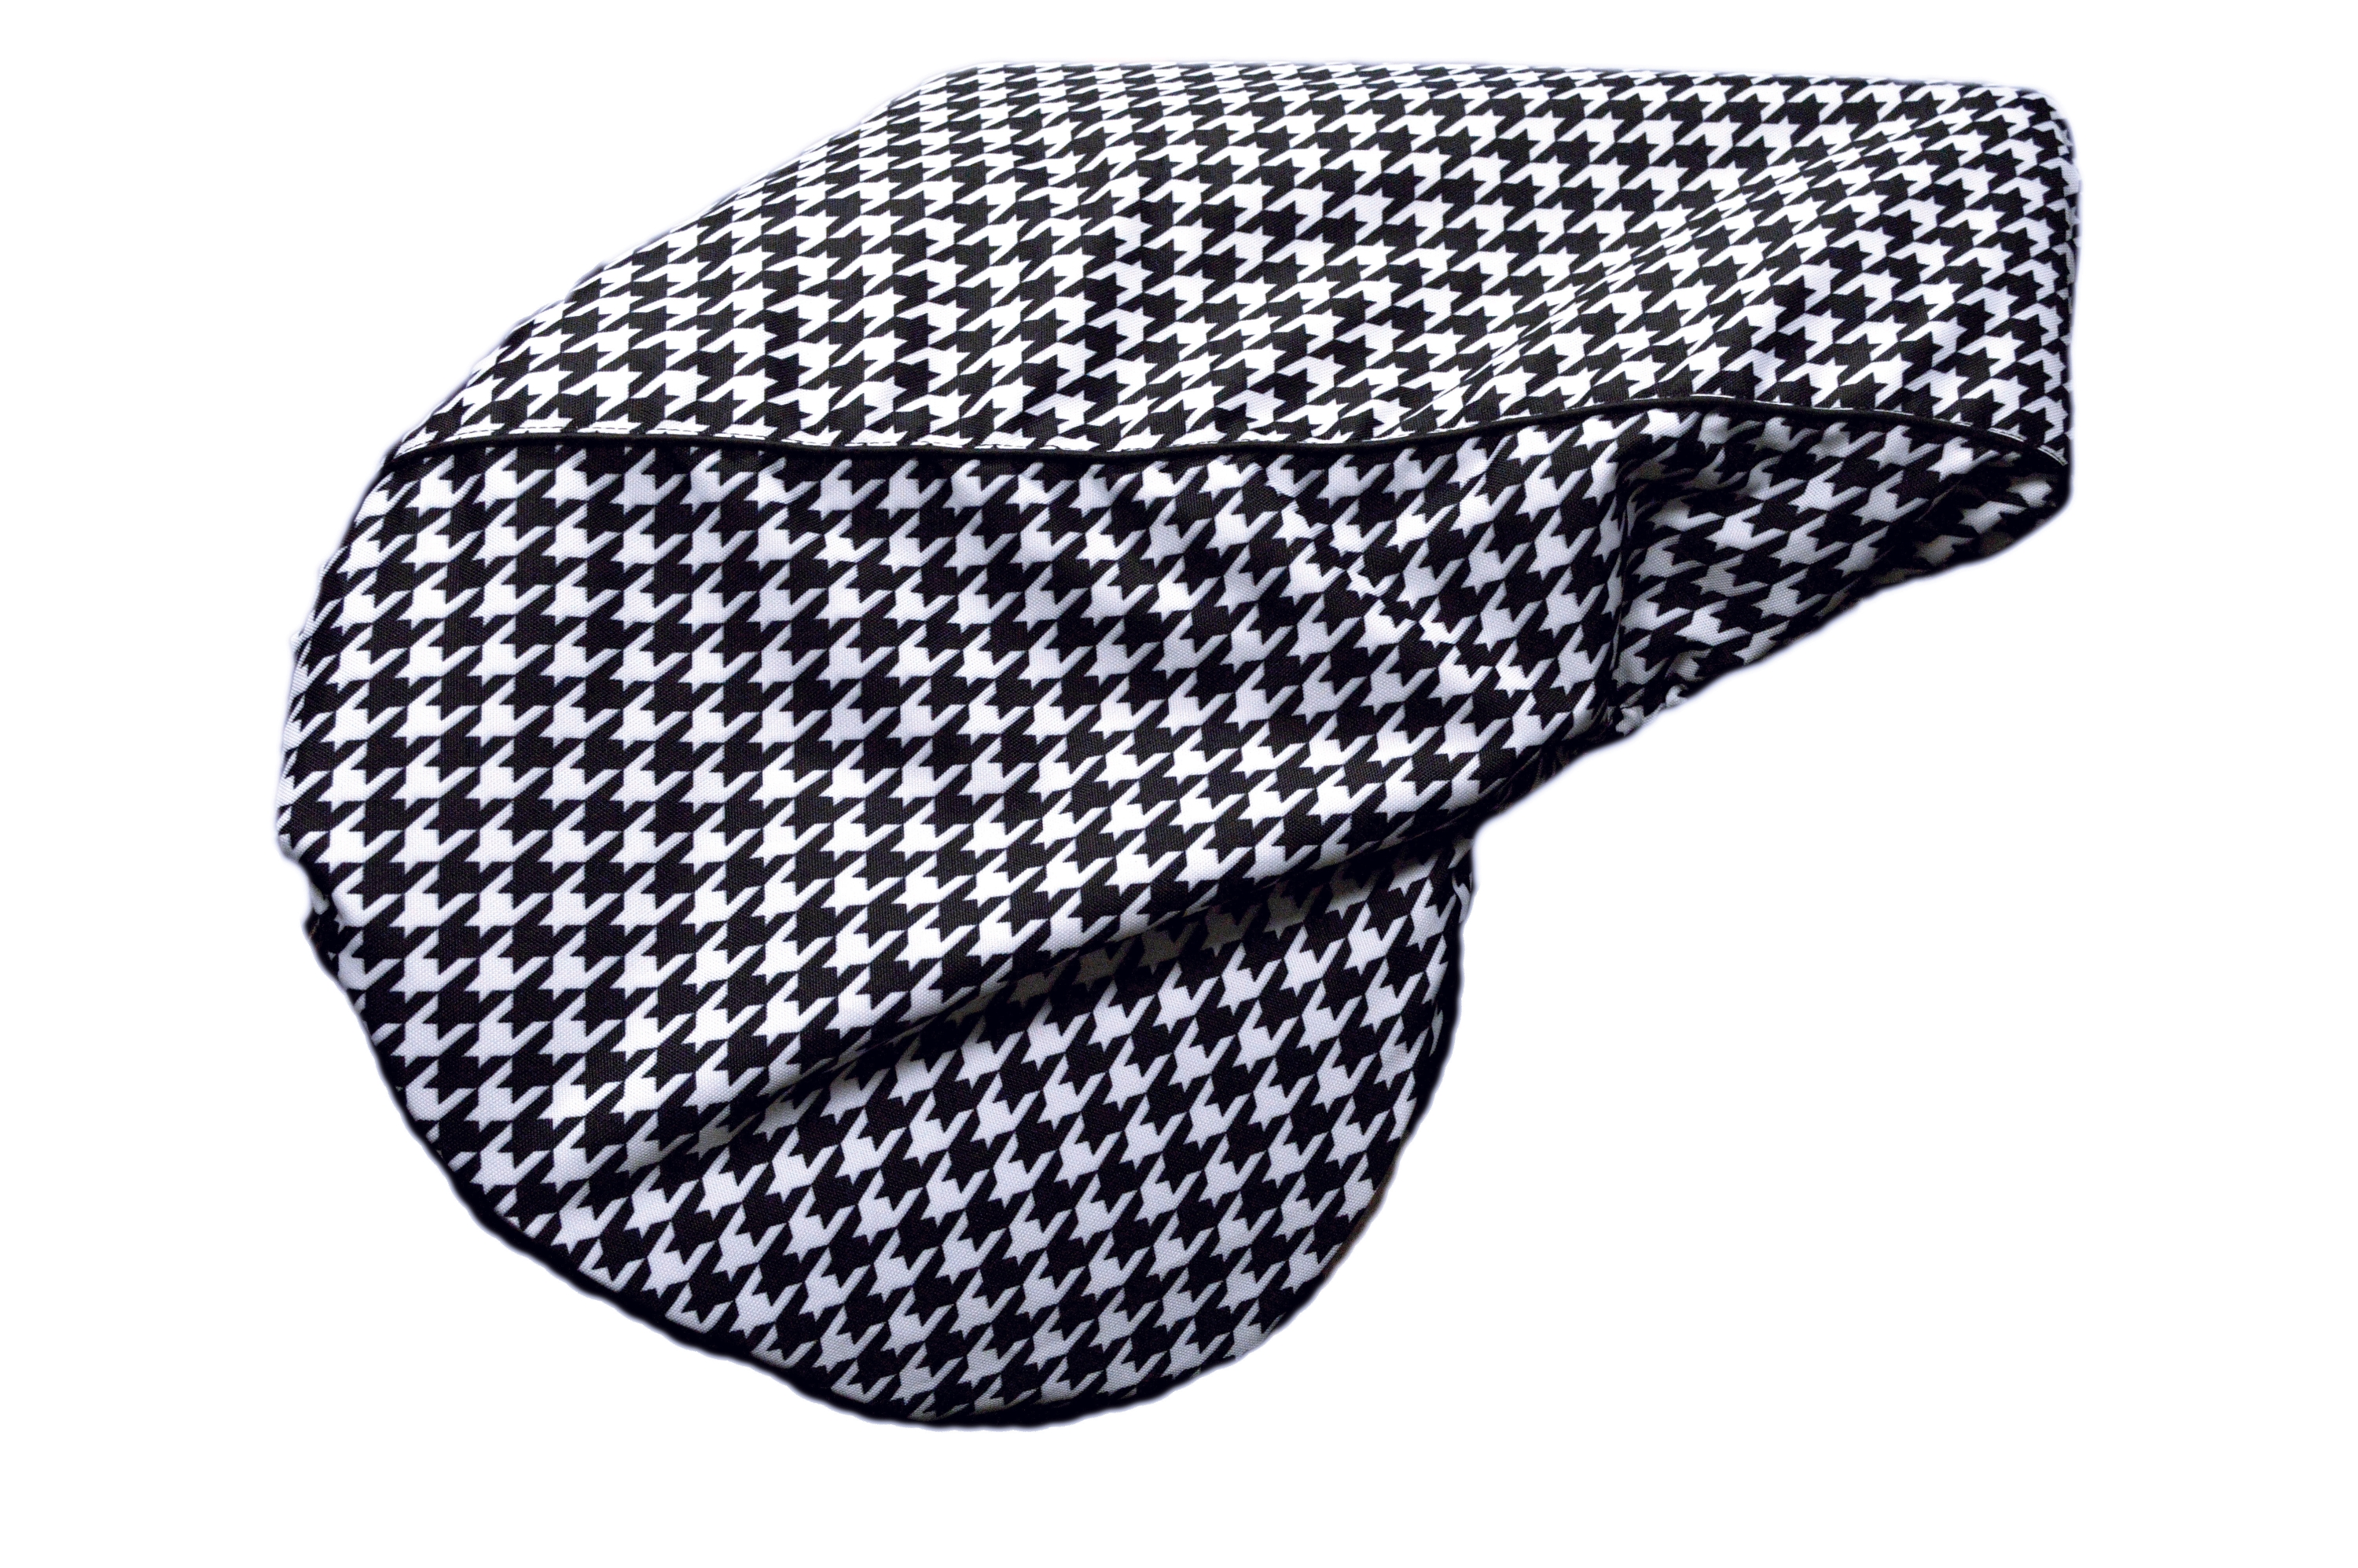 Lami-Cell Houndstooth English Saddle Cover